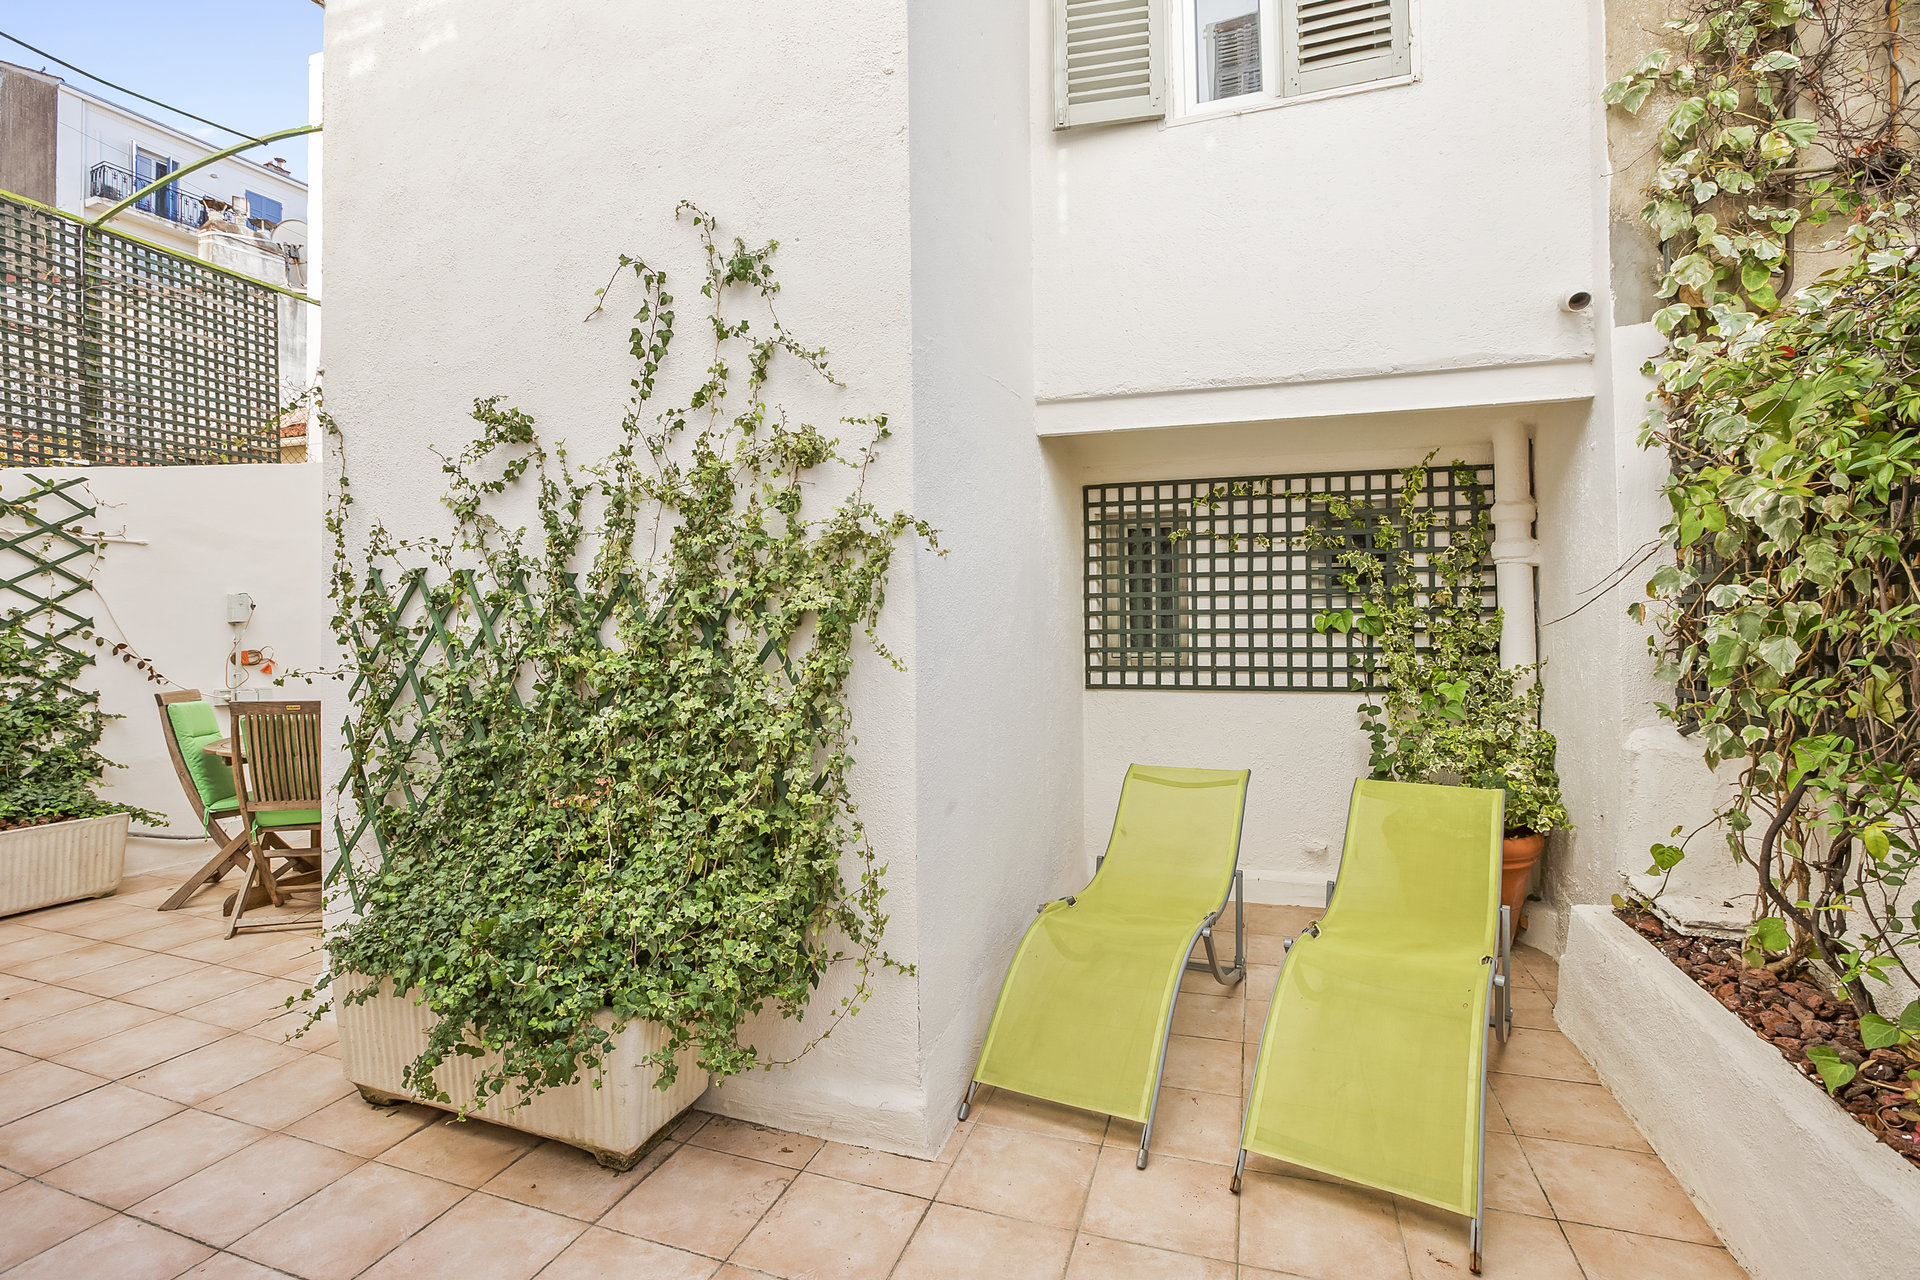 Super 2 bed apartment with a sunny 20m² terrace in the heart of the Banane in Cannes